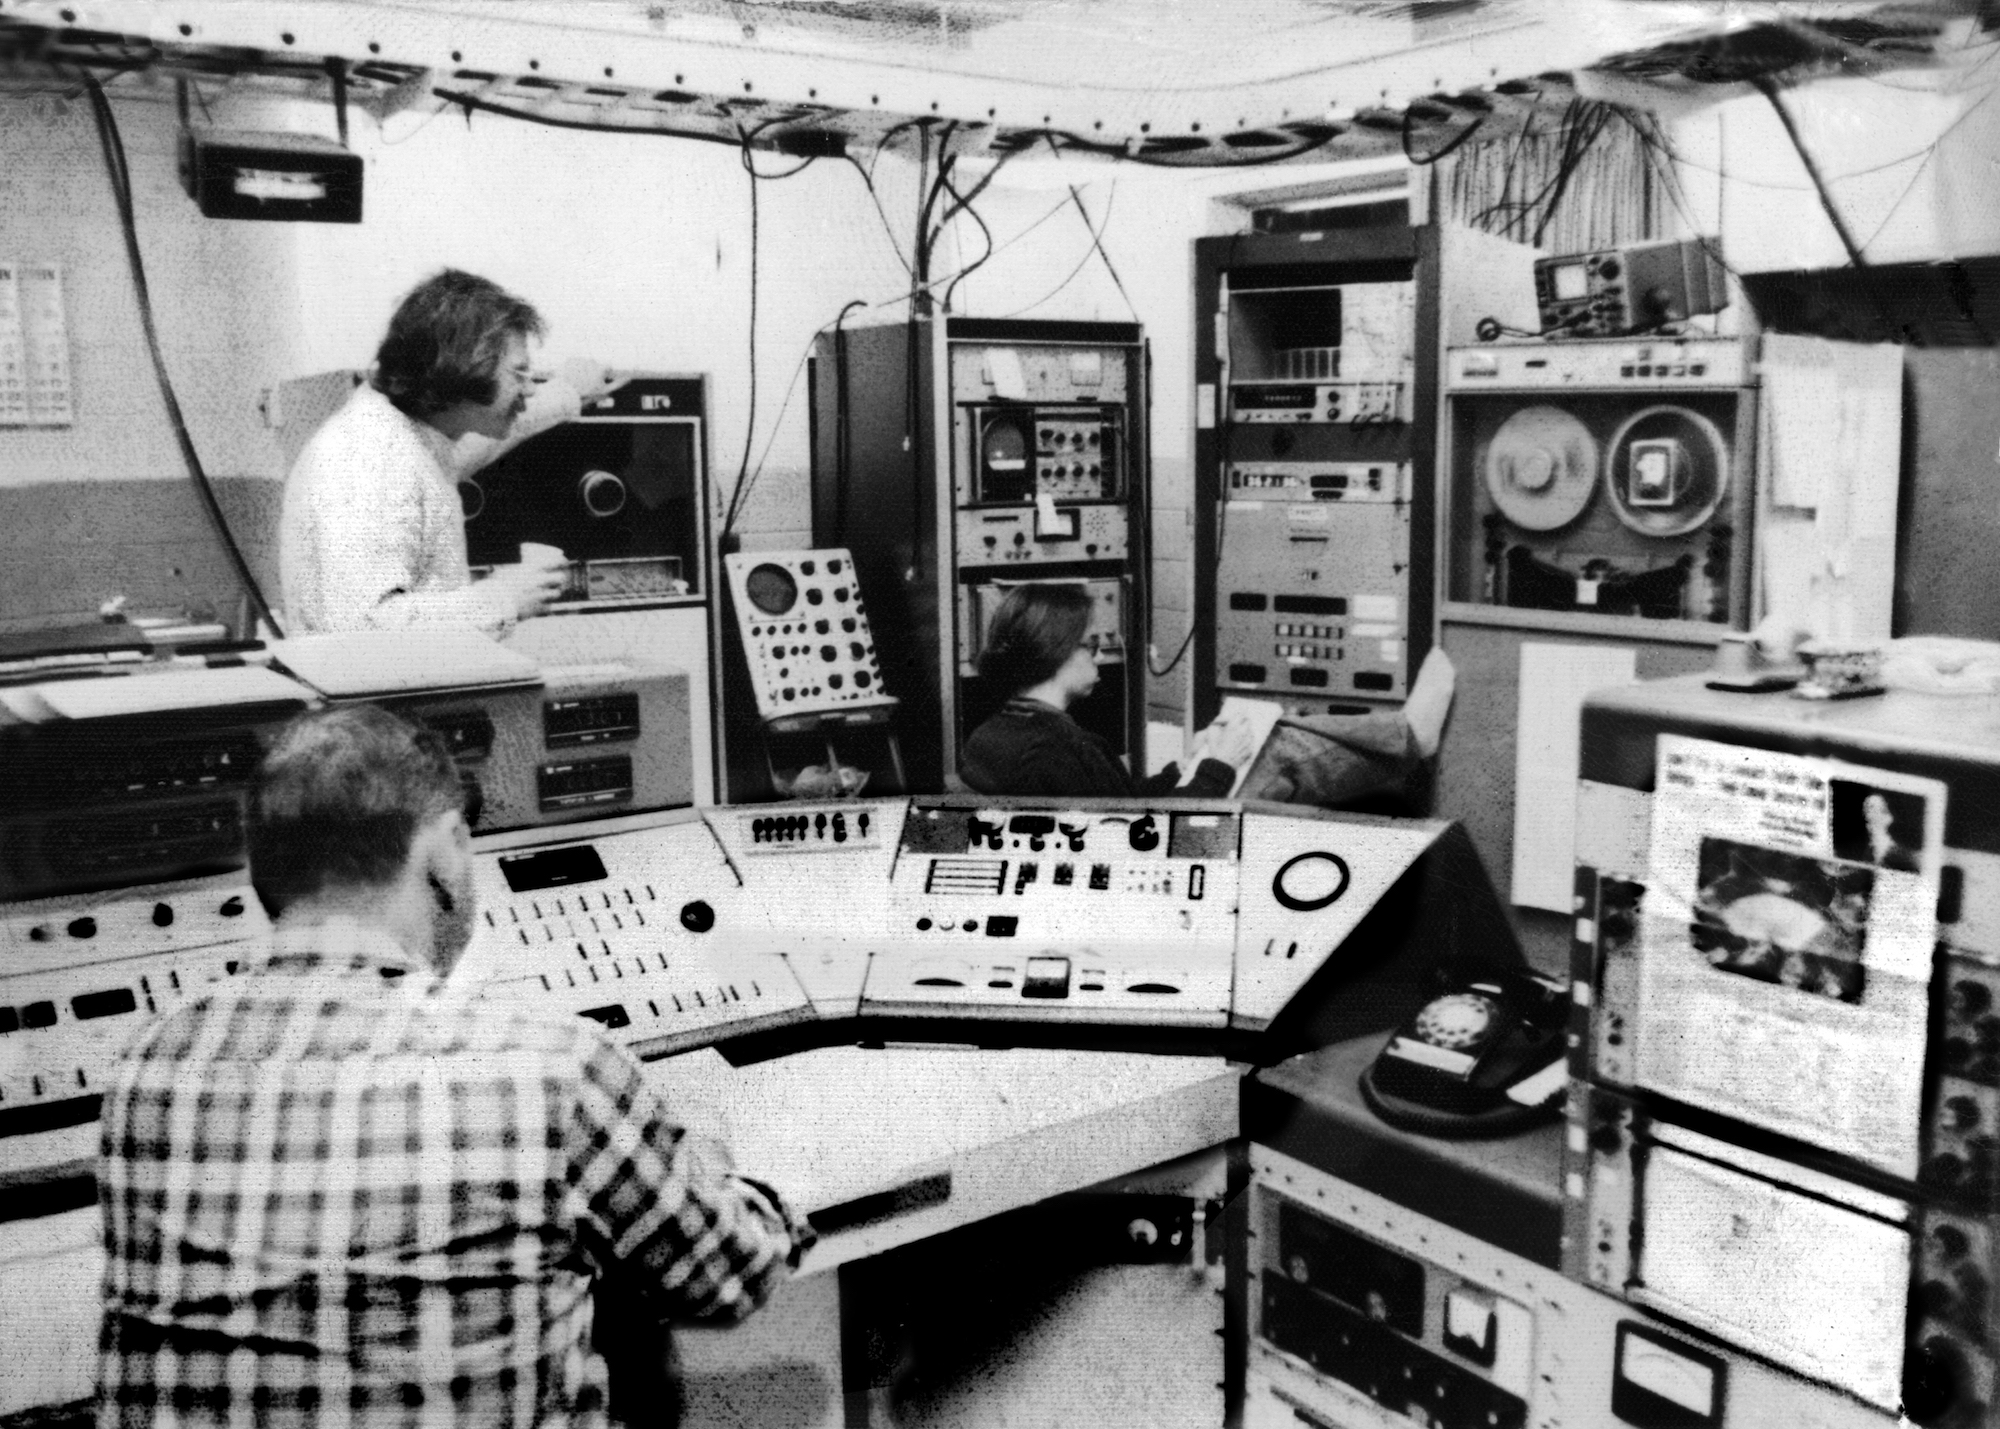 Tarter (background) gets comfortable in the control room at the National Radio Astronomy Observatory in 1976.